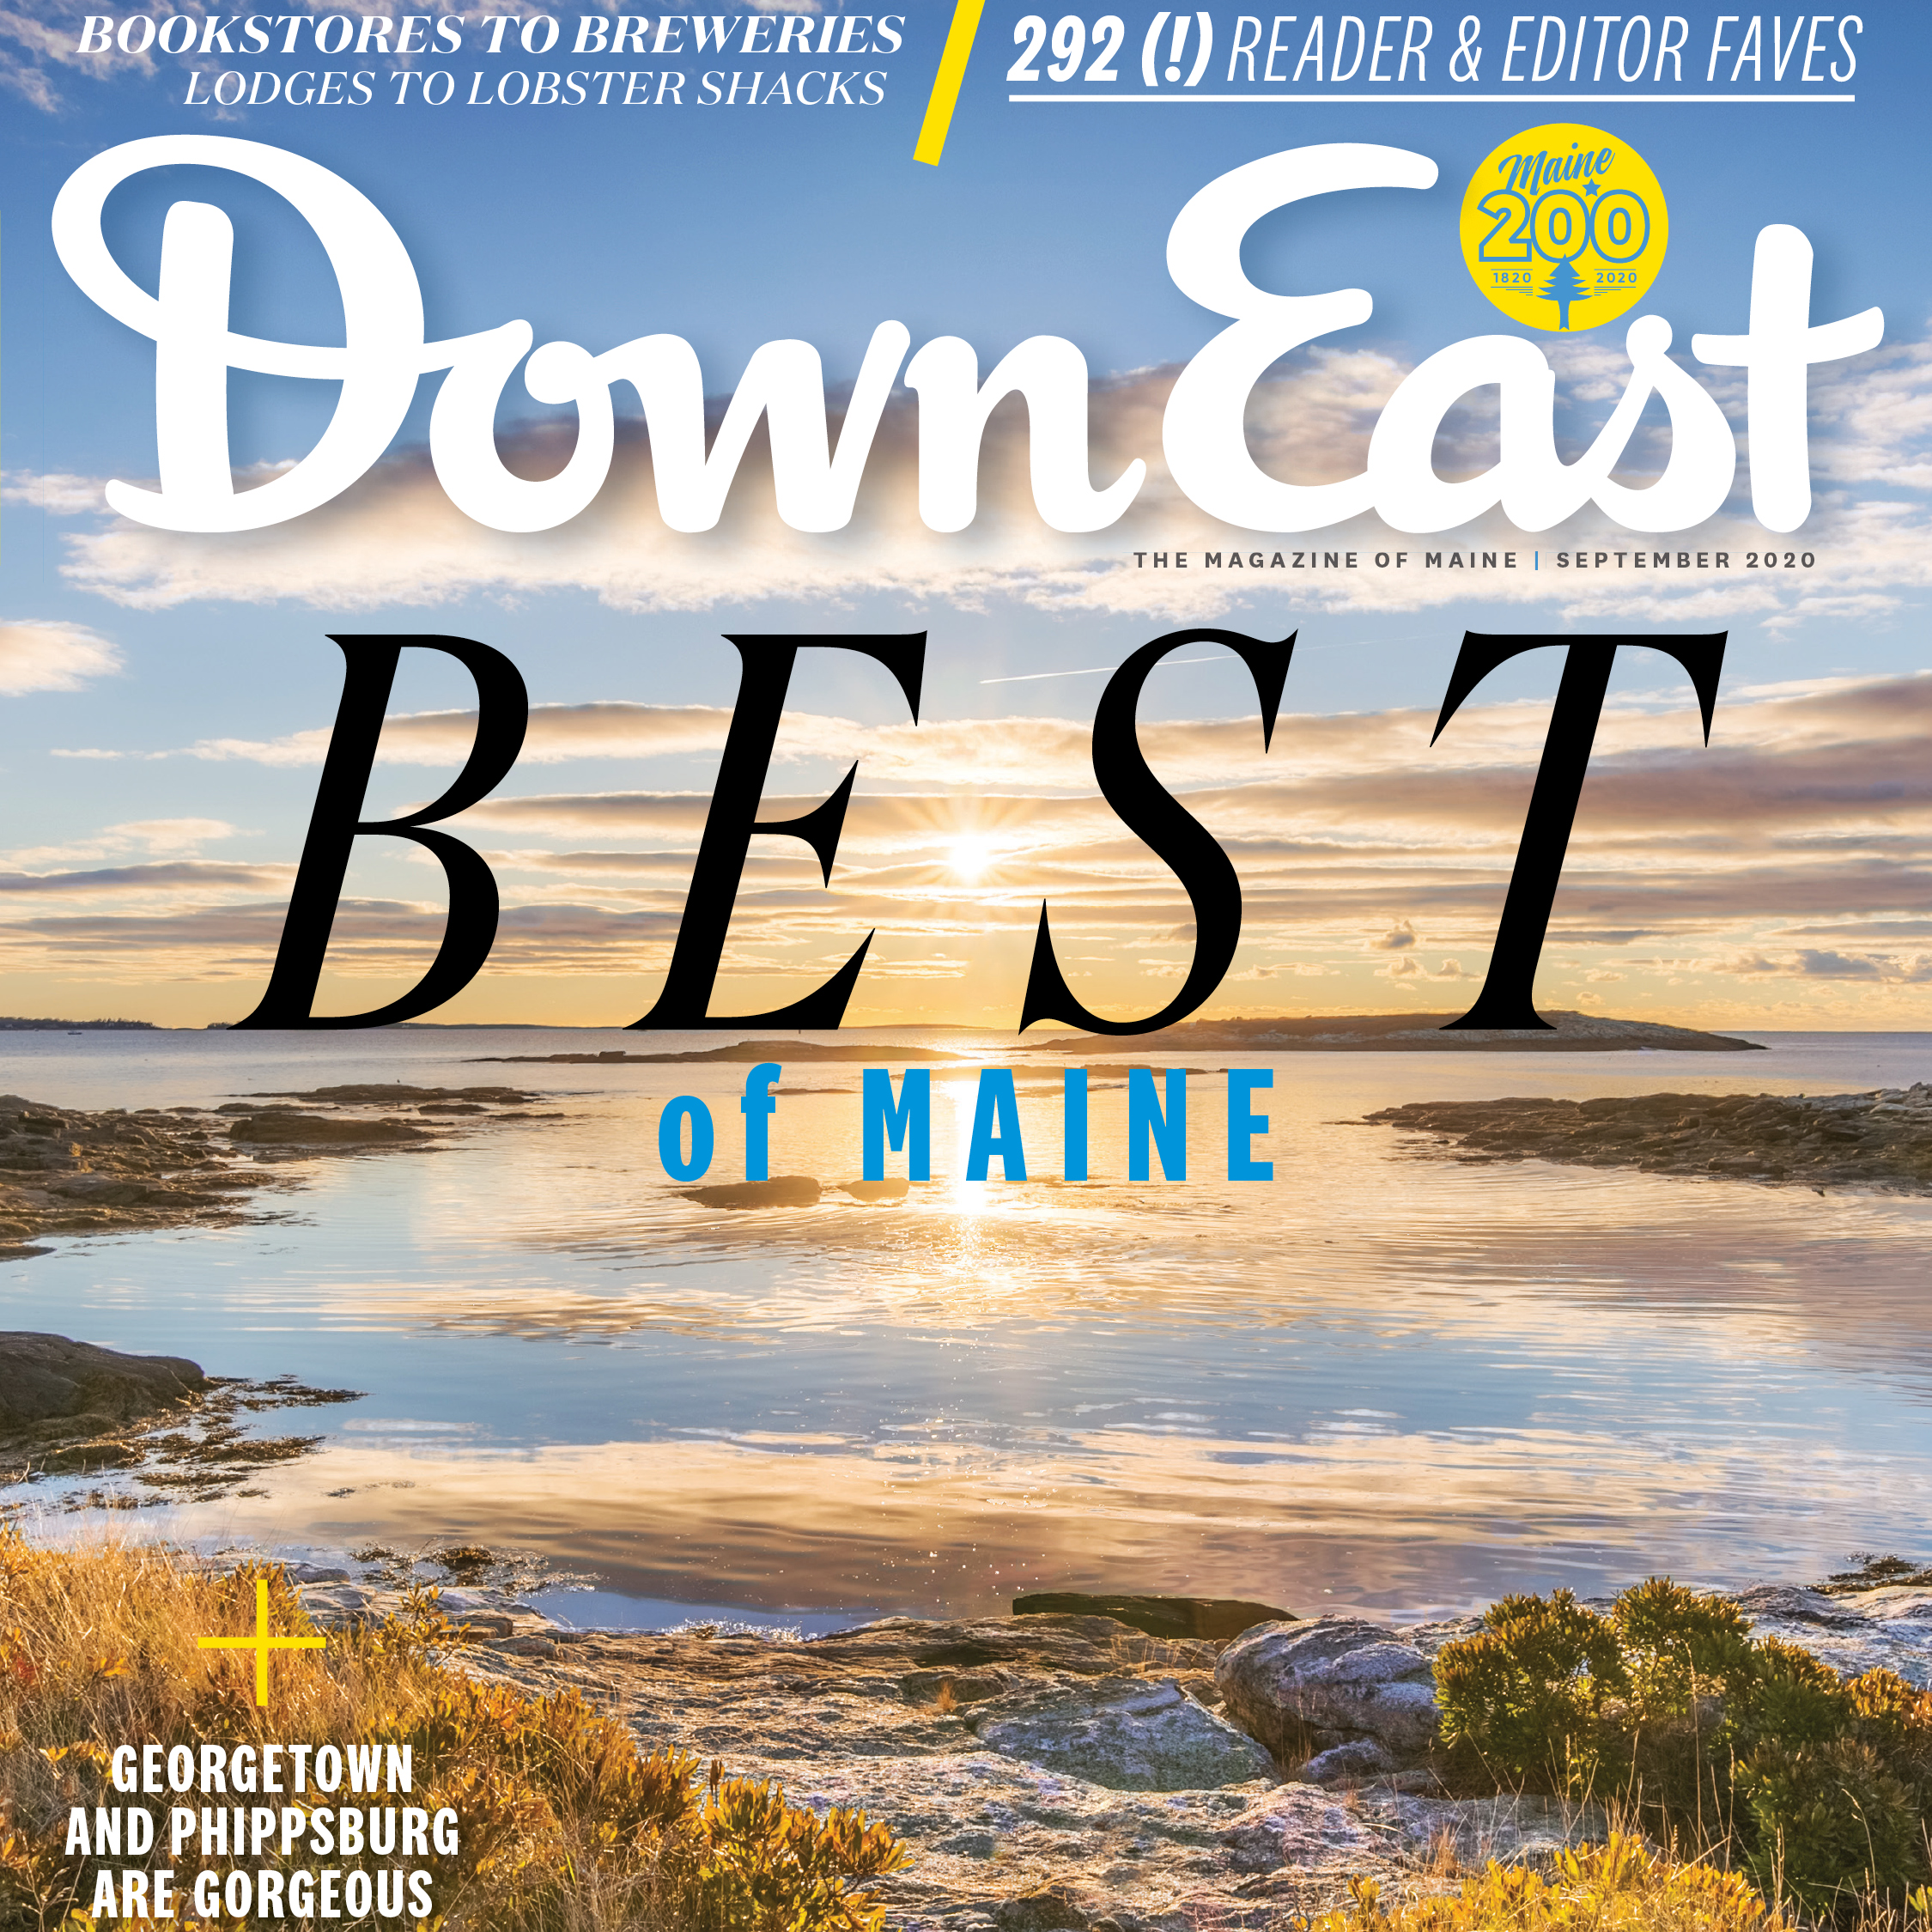 Knickerbocker Group Down East magazine Best of Maine in Builder and Architecture.